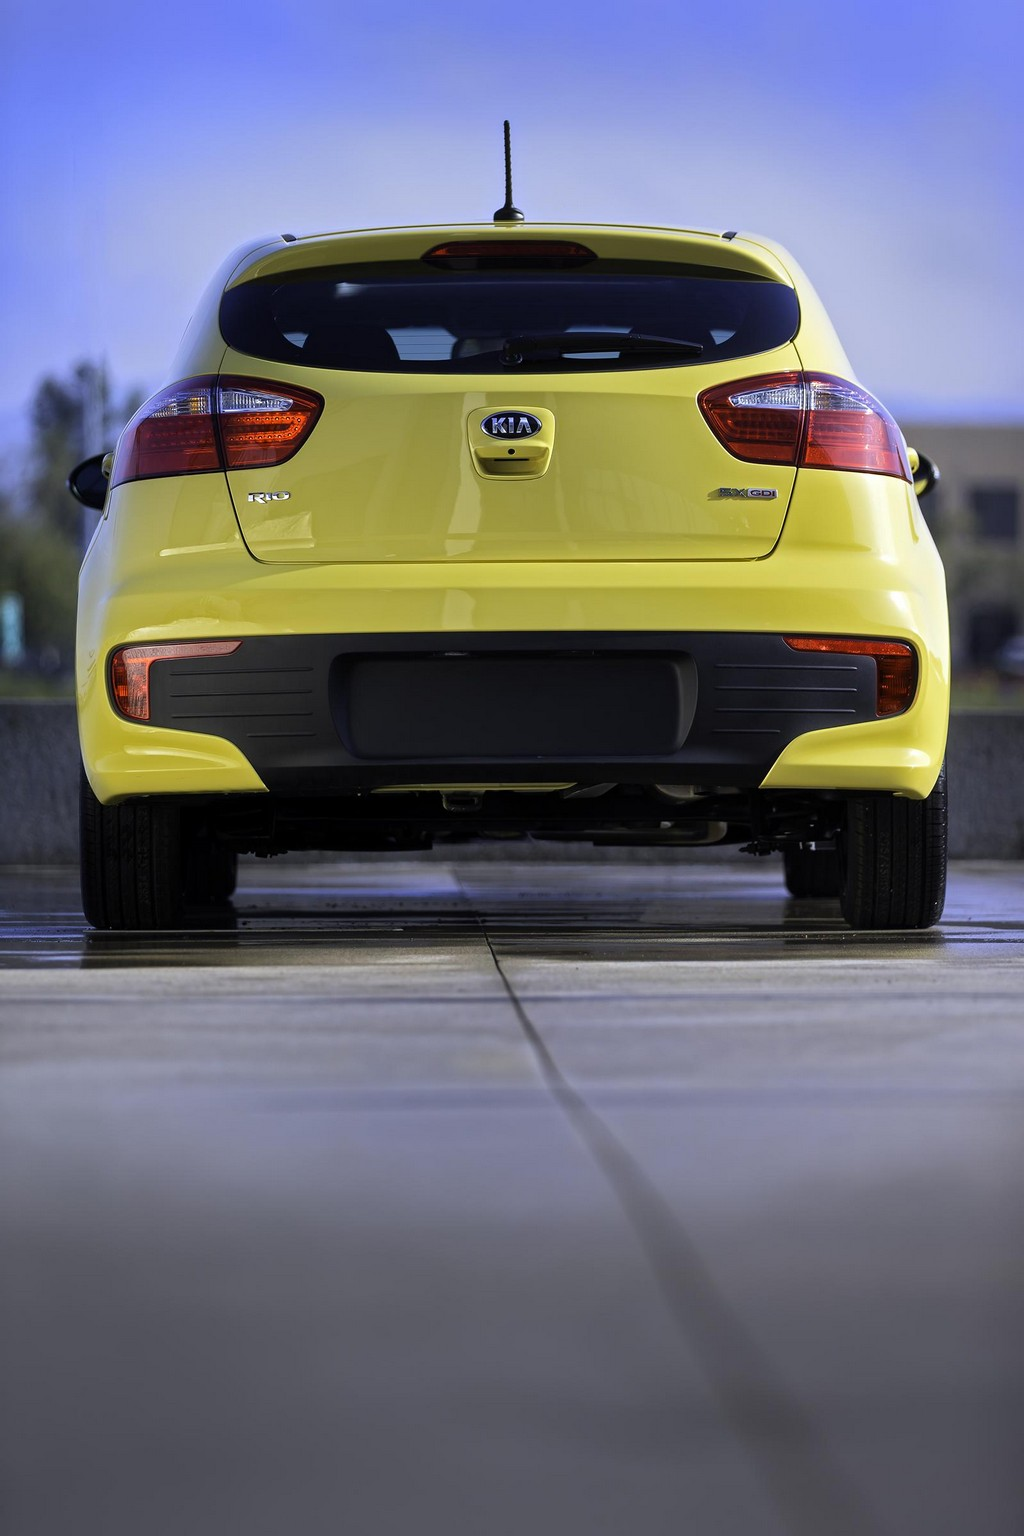 2016 Kia Rio Hatchback And Sedan Machinespider Com